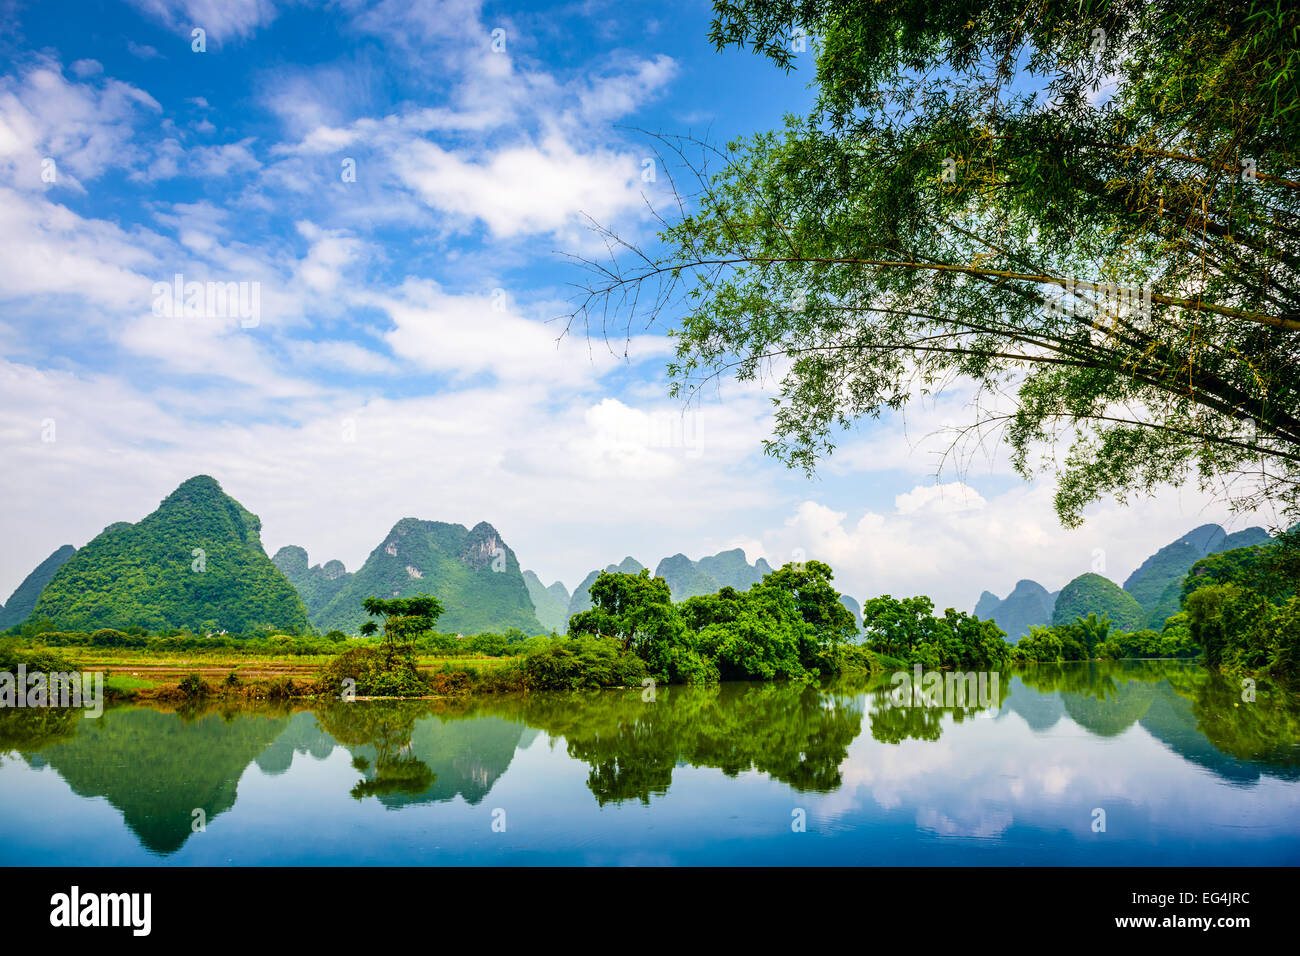 Karst Mountain landscape in Guilin, China. - Stock Image